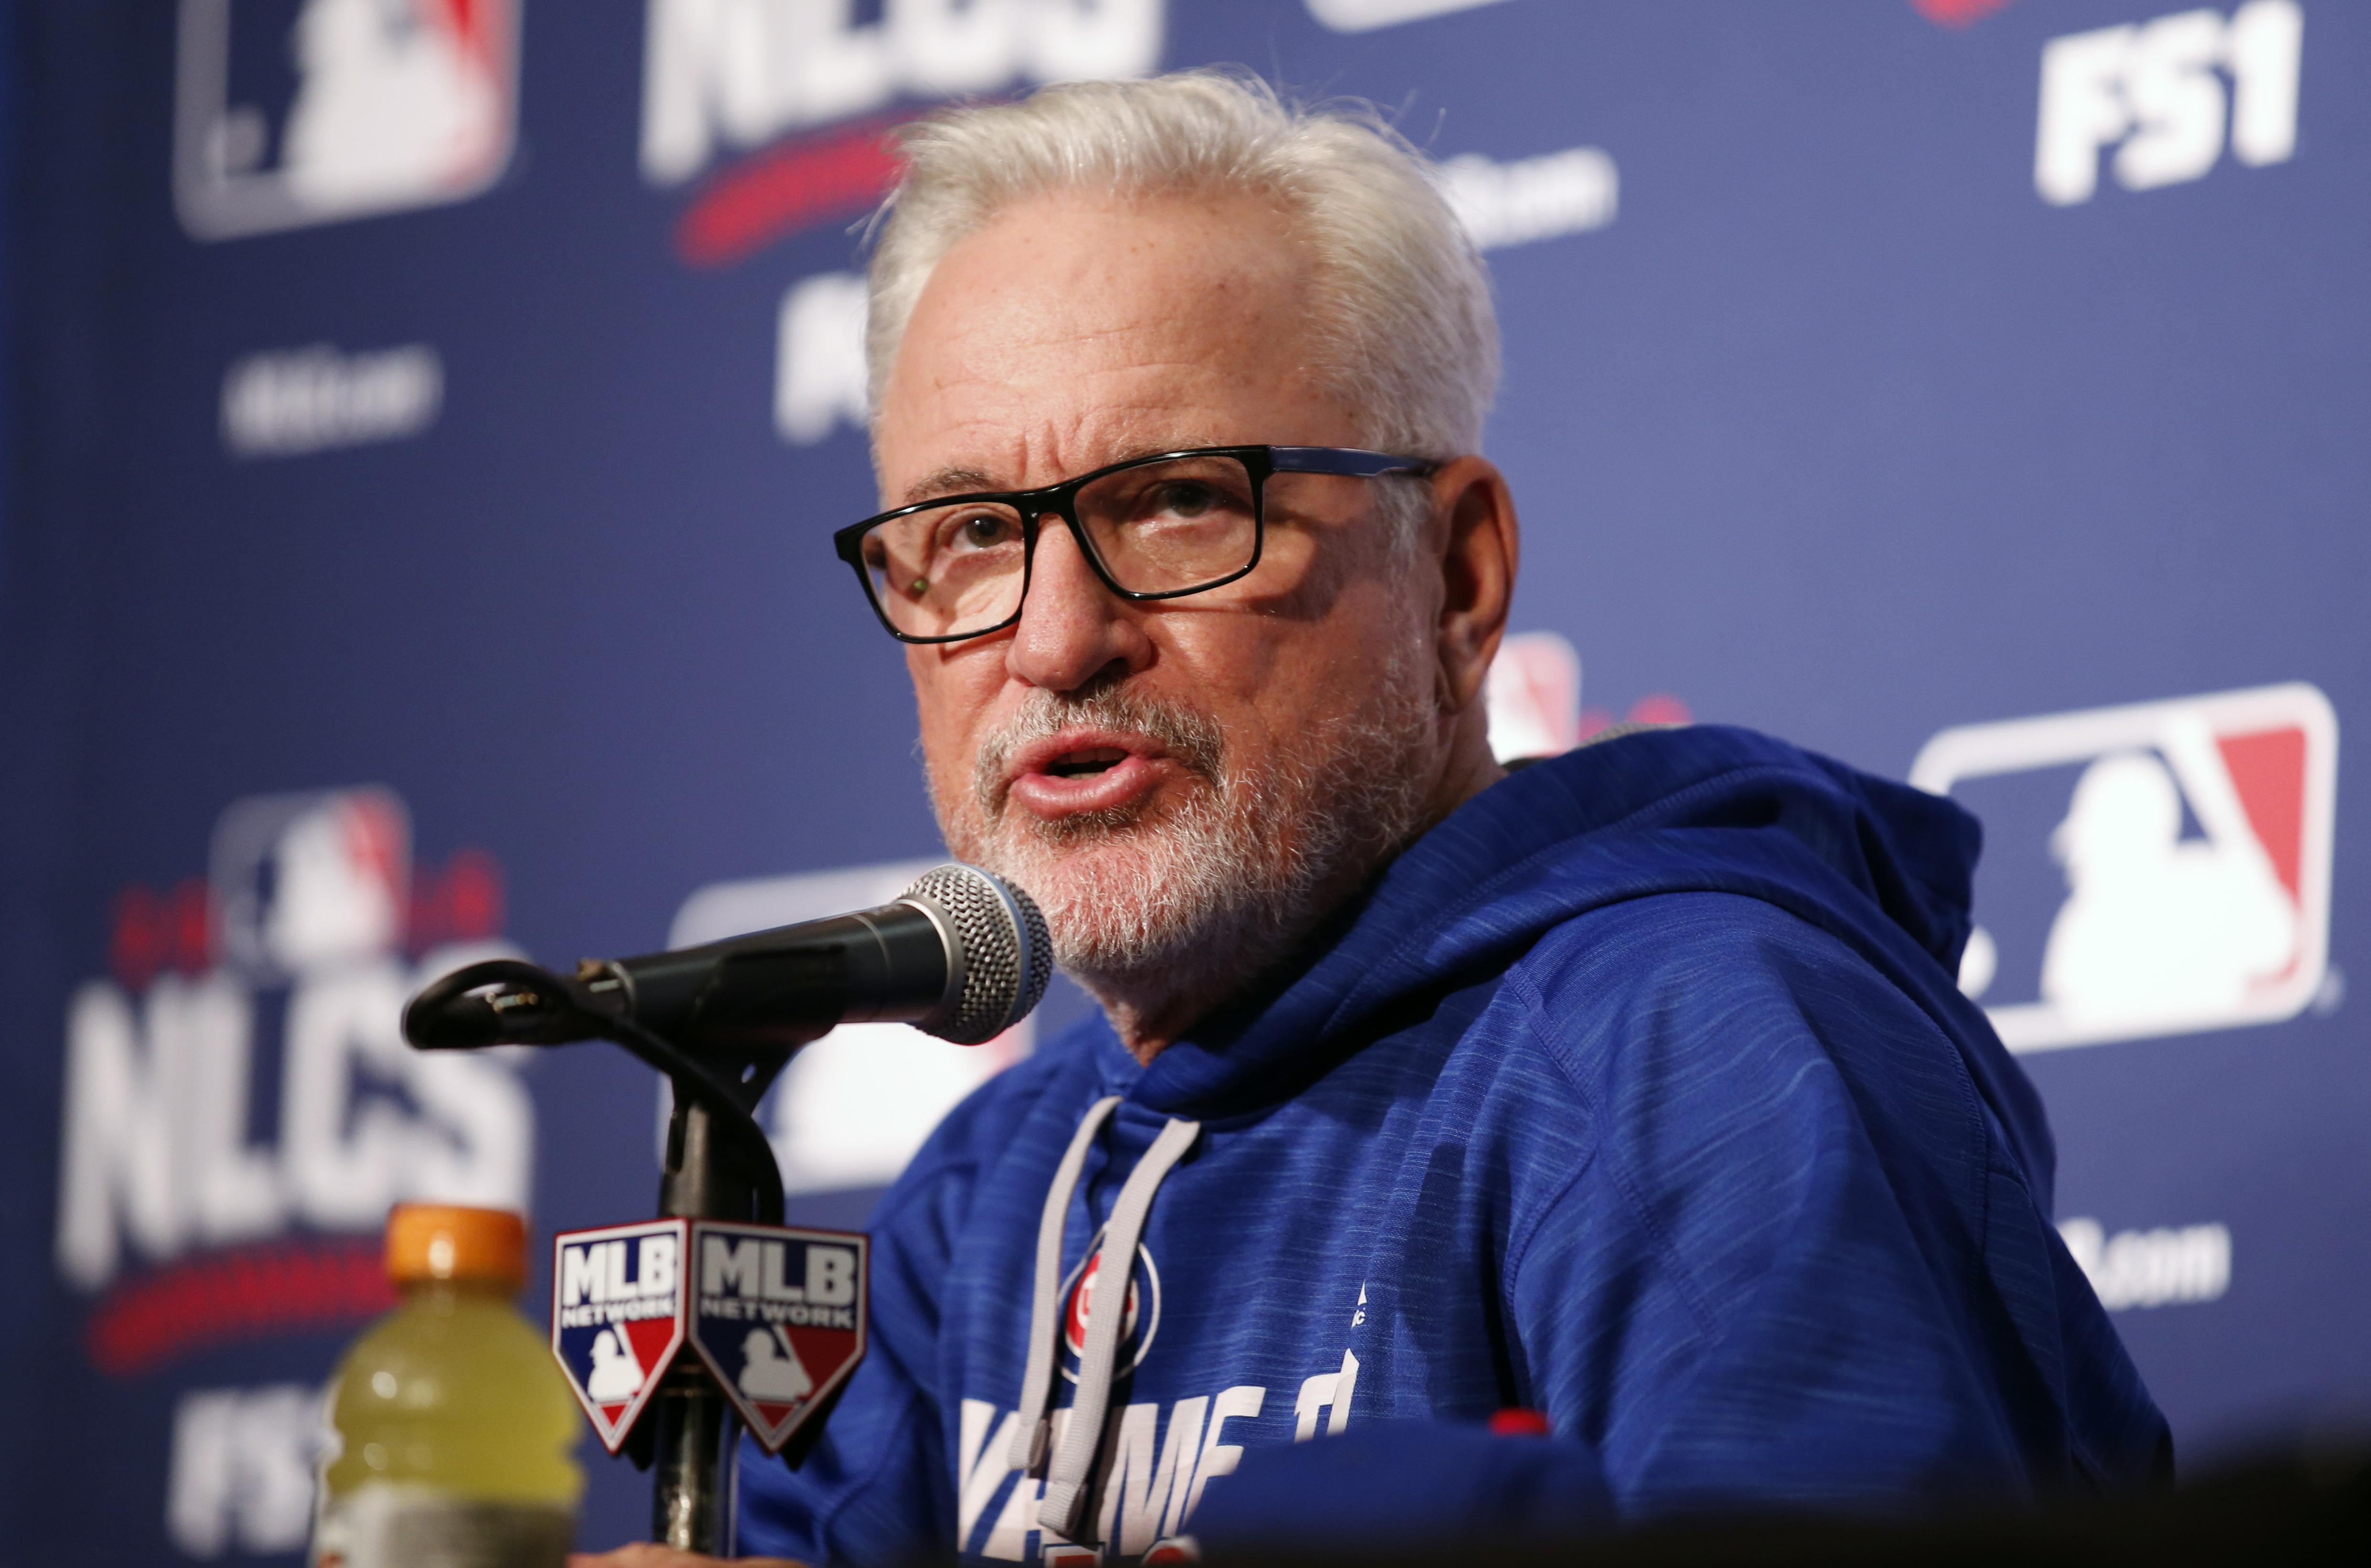 Chicago Cubs manager Joe Maddon answers a question during a news conference before Game 1 of baseball's National League Championship Series against the Los Angeles Dodgers, Saturday, Oct. 15, 2016, in Chicago. (AP Photo/Nam Y. Huh)